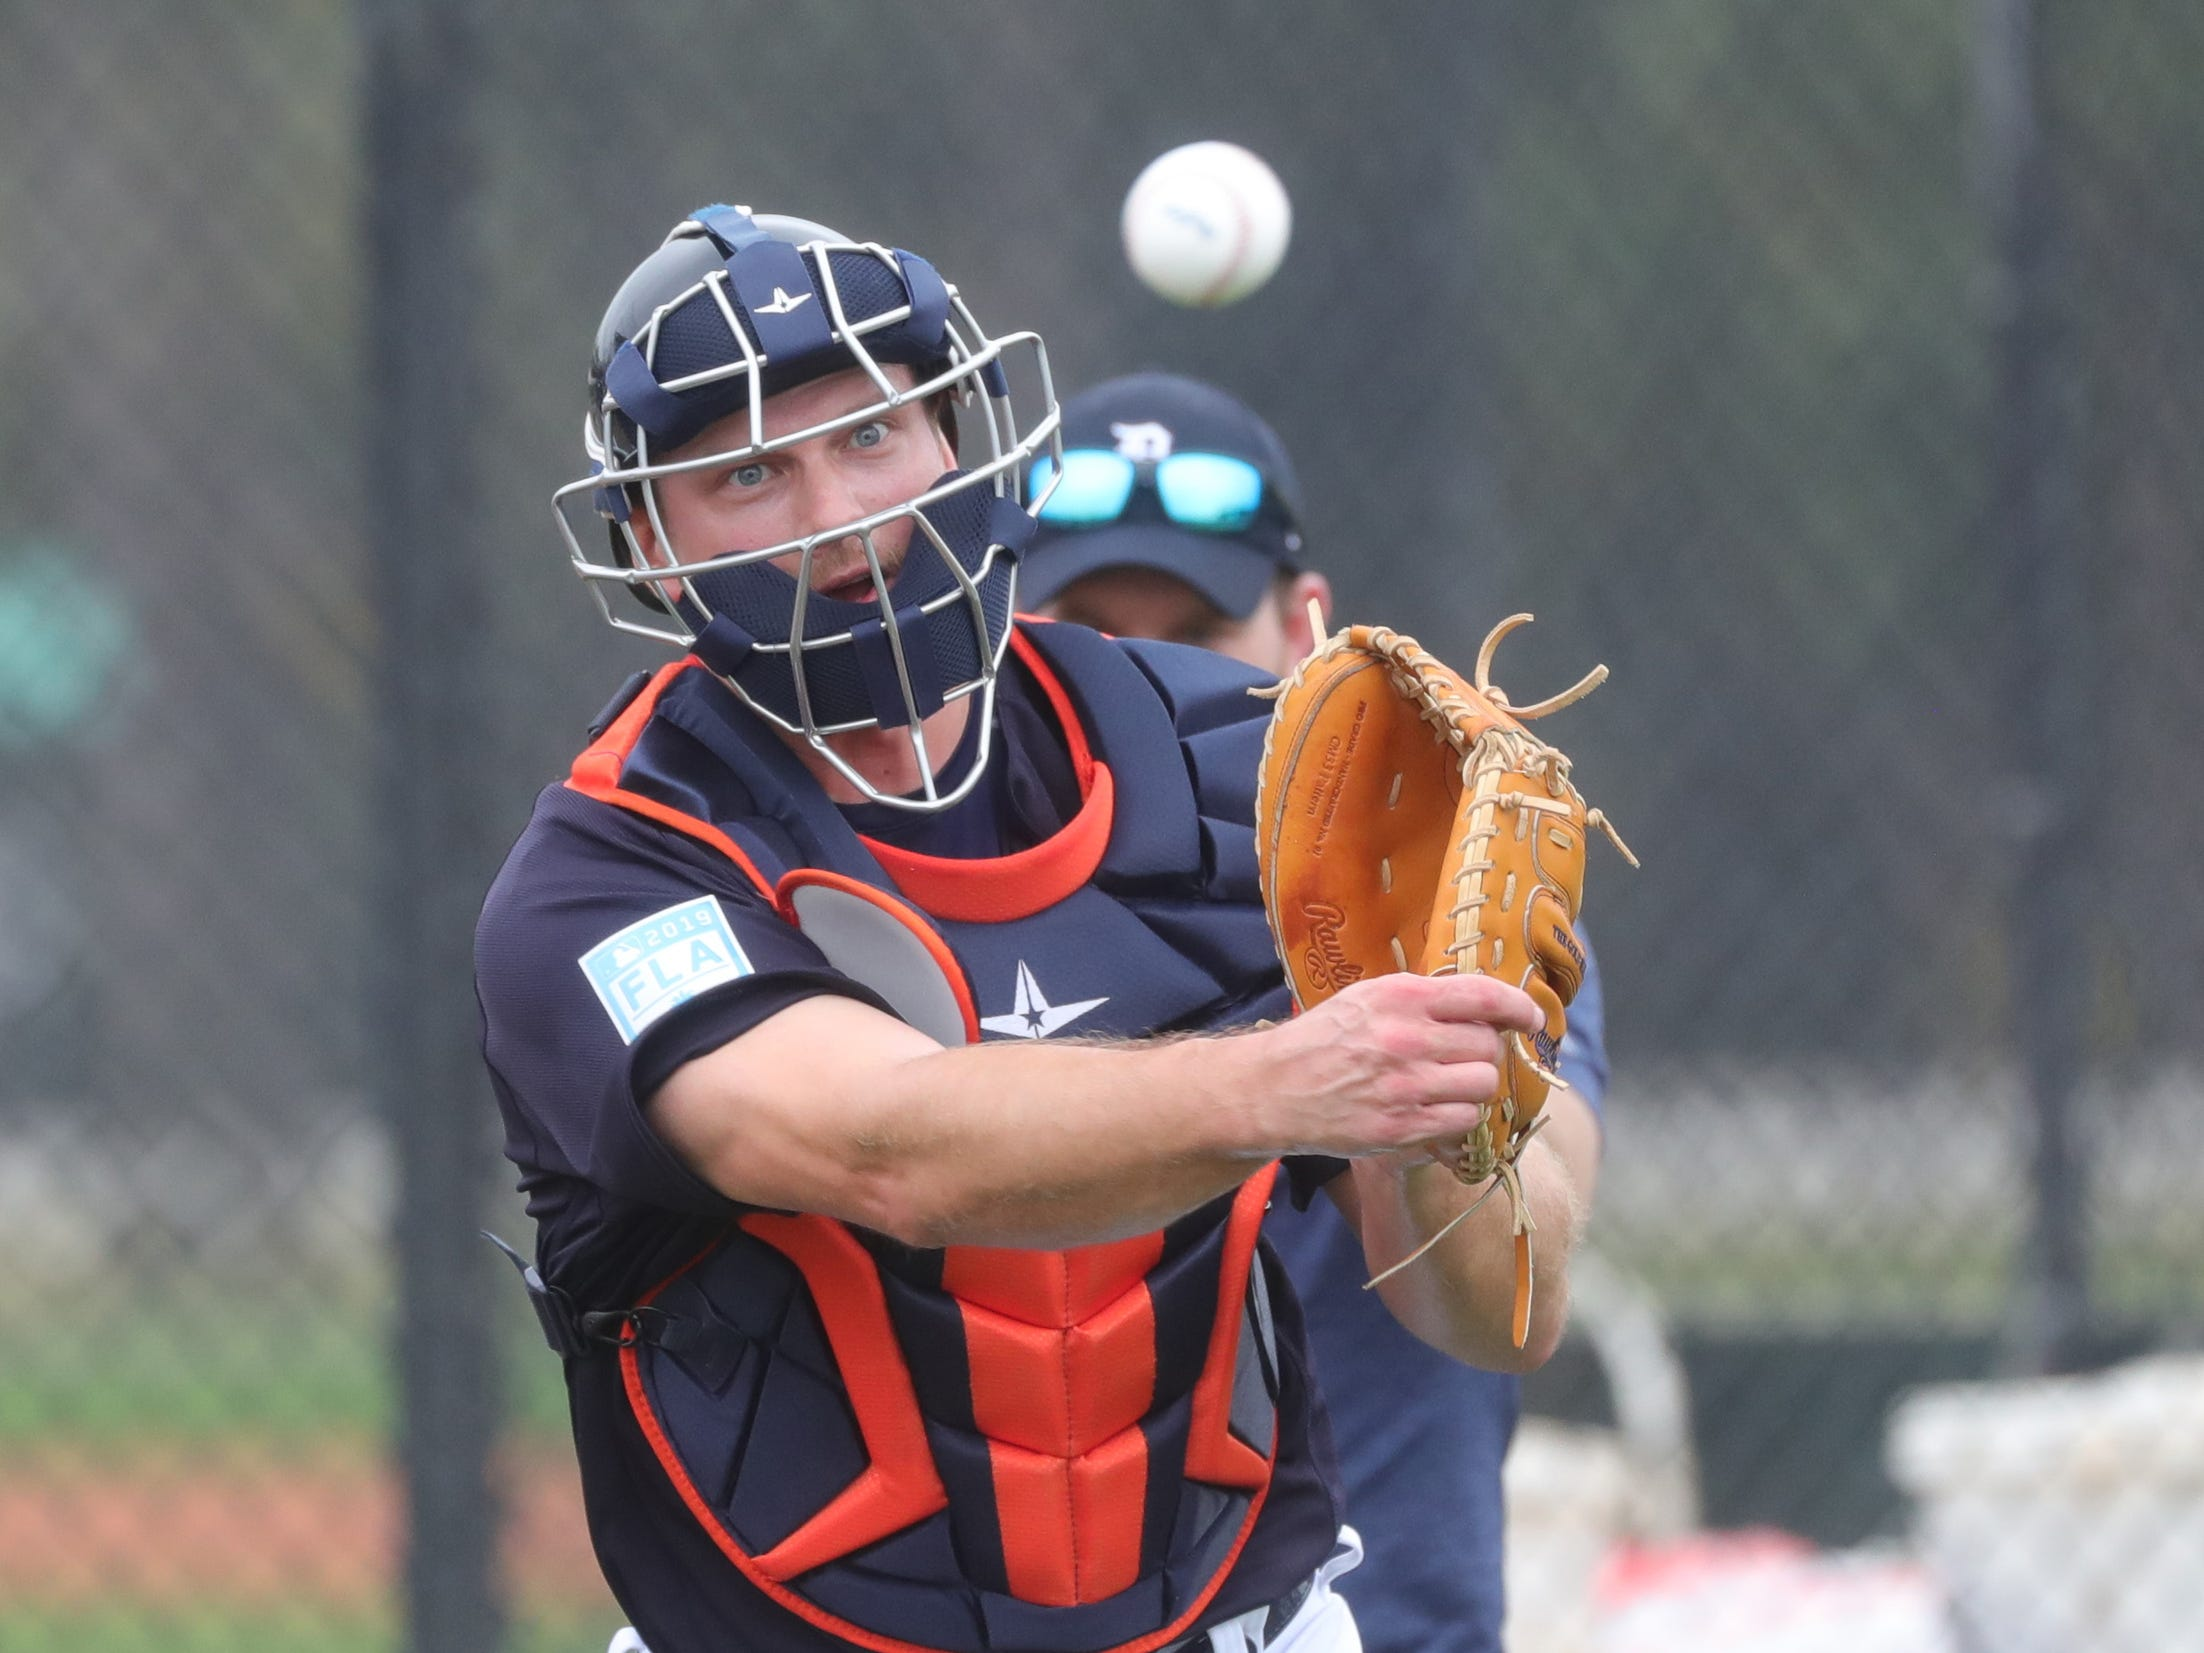 Detroit Tigers catcher John Hicks throws to first base during practice Monday, Feb. 18, 2019 at Publix Field at Joker Marchant Stadium in Lakeland, Florida.